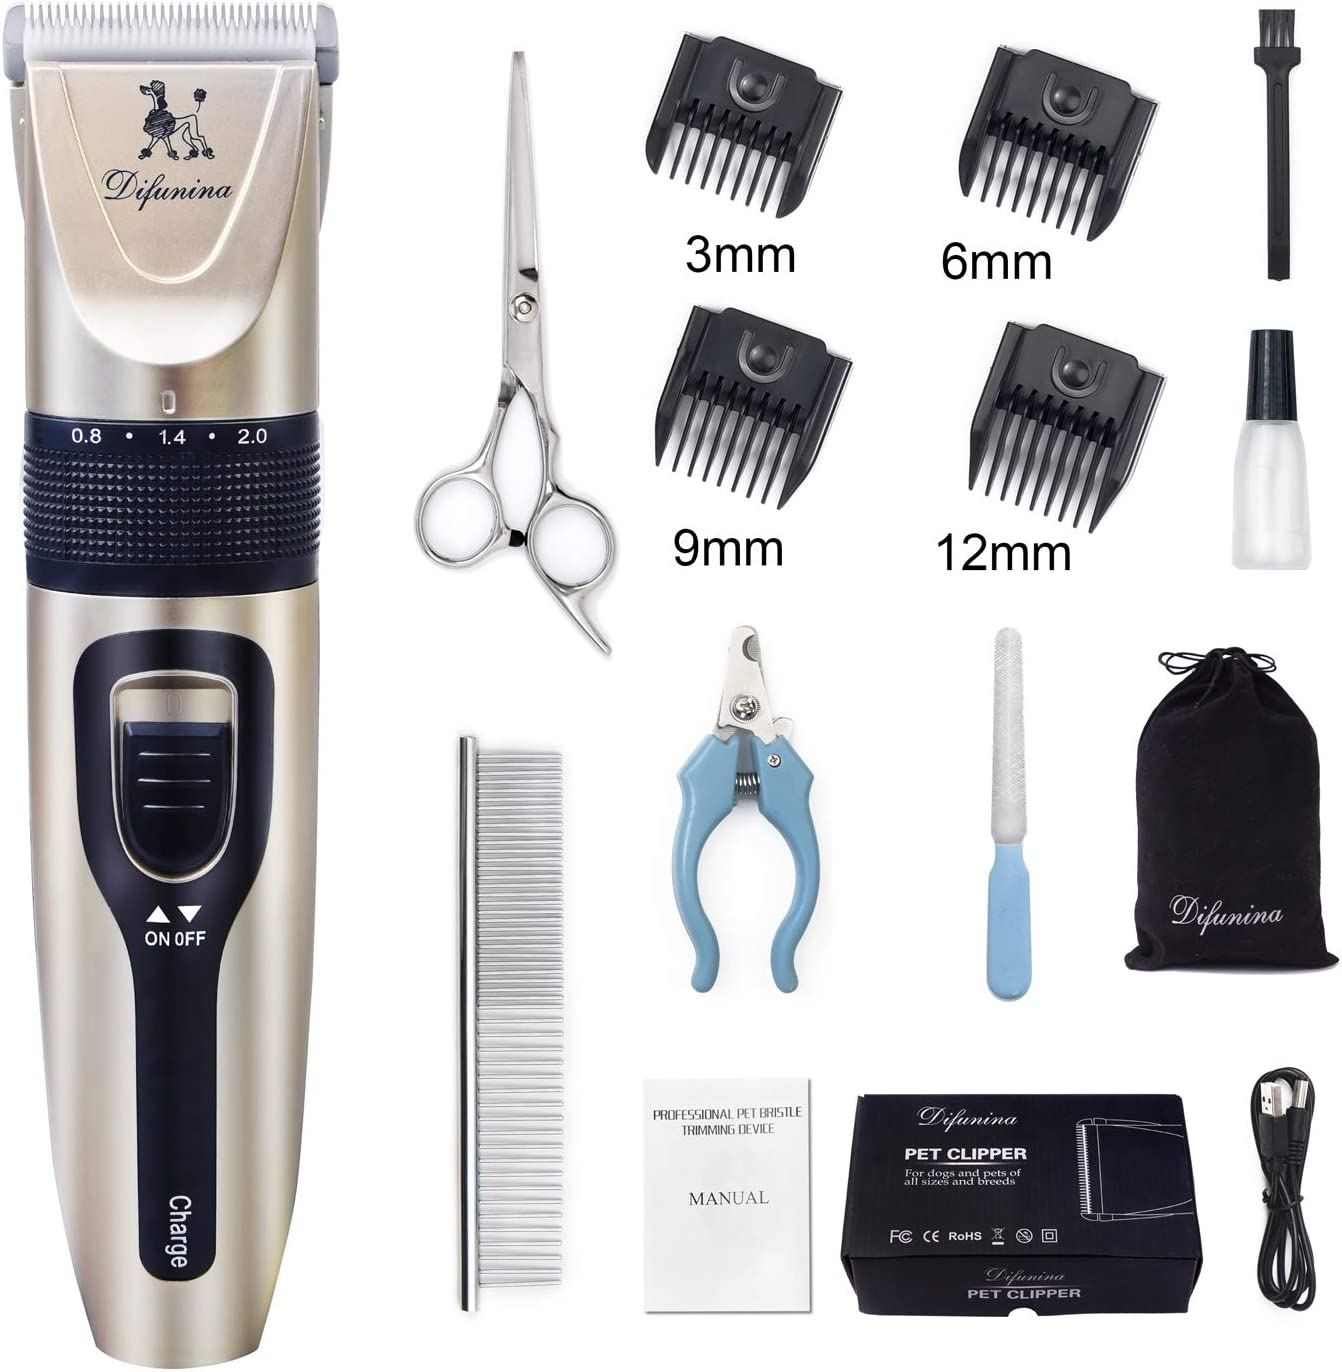 DIFUNINA Quiet Rechargeable Dogs Clippers Grooming Trimming Kit Set with Long Life Battery Use and Portable Vevet Pouch for Free for Small Middle Large Dogs and Cats Pets - Gold